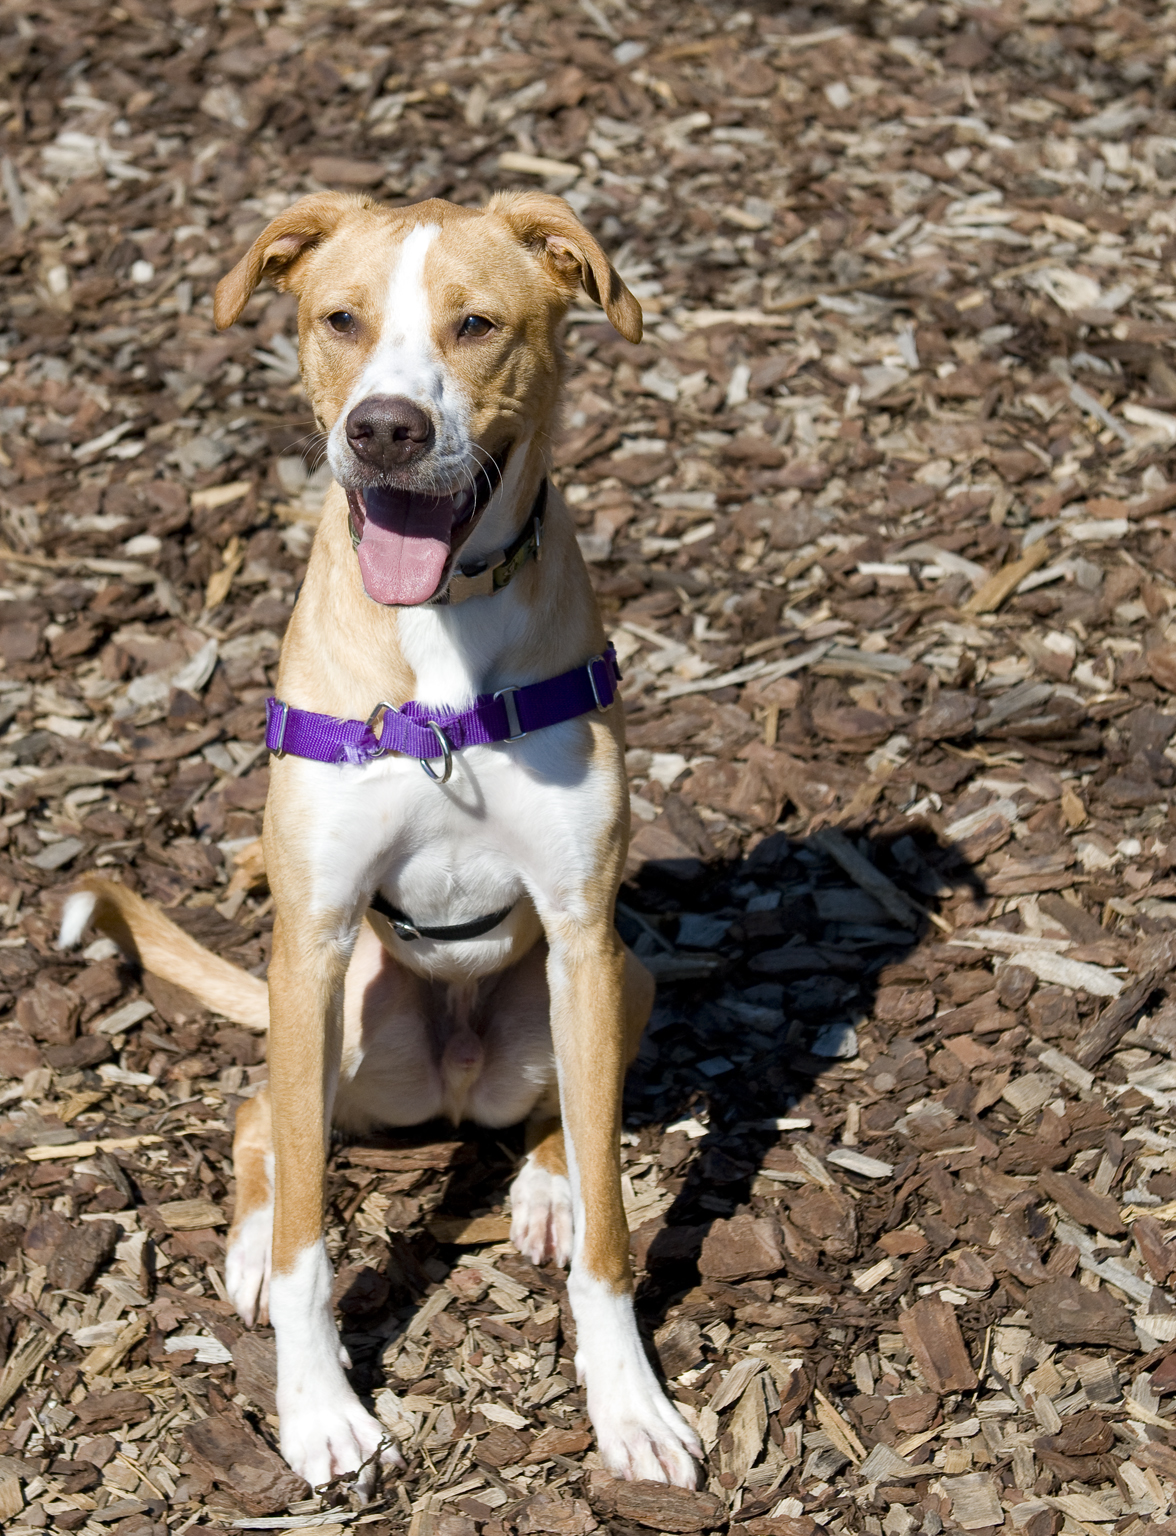 Pet of the Week: Belly Flop